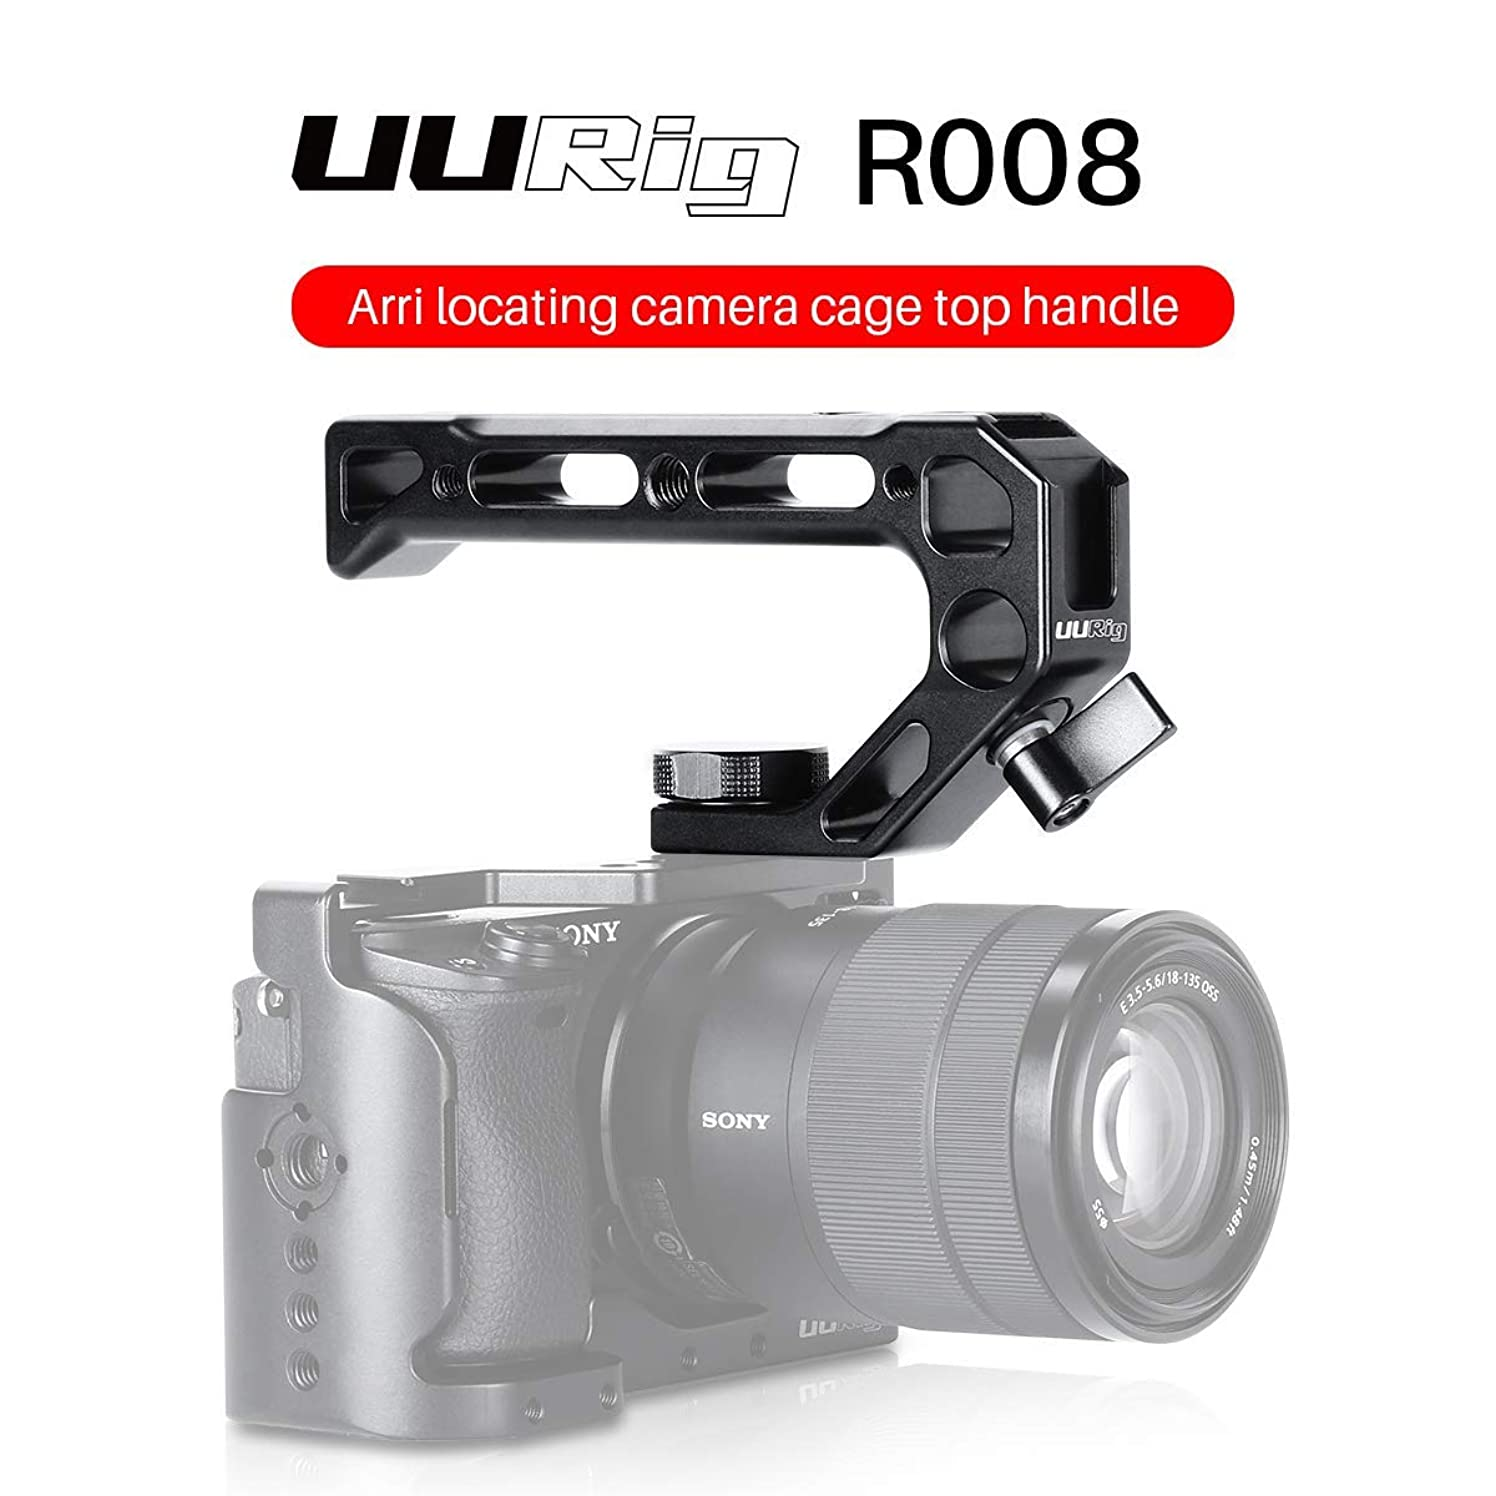 Camera Top Handle Grip with Cold Shoe Mount for Microphone Lights Monitor +15mm Rod Clamp+ 3/8 Screw Lock for Camera Rig Cage